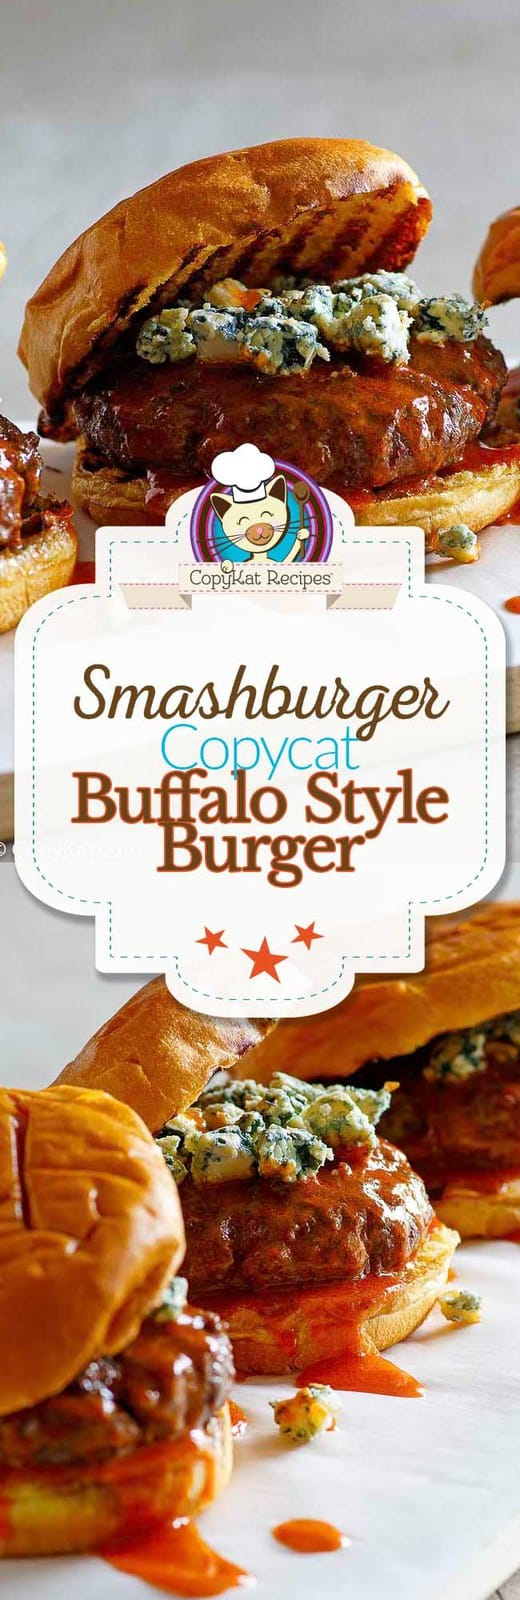 You can recreate the Smashburger Buffalo & Blue Cheese burger at home. #burger #copycat #Smashburger #buffalostyle #burgers #recipe #sauce